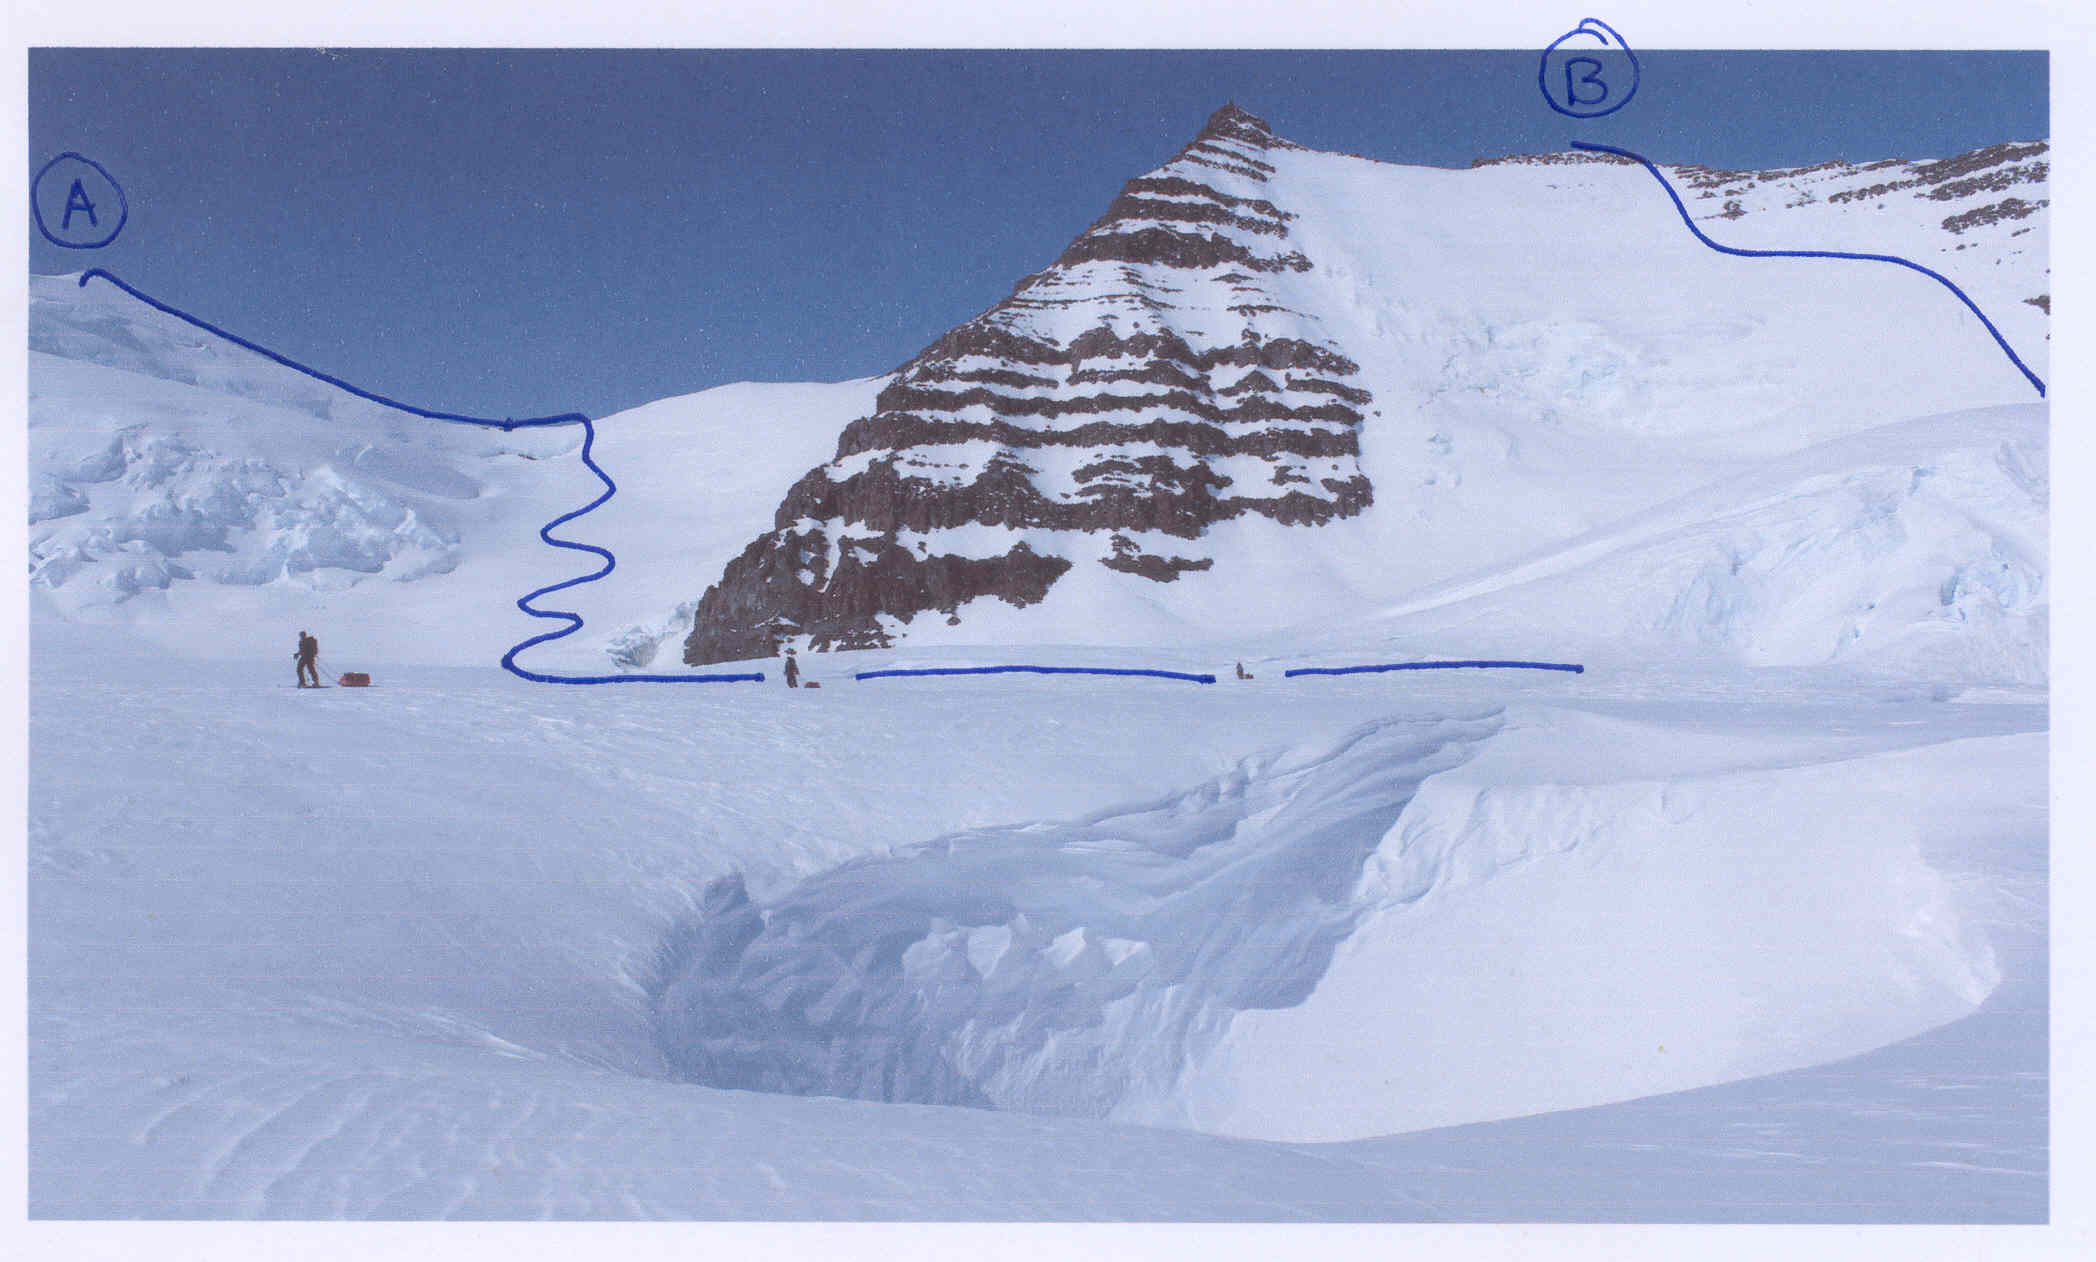 A) Peak 3,047m and (B) Peak 3,003m, with routes of ascent. The higher rocky summit left of B is most likely unclimbed.